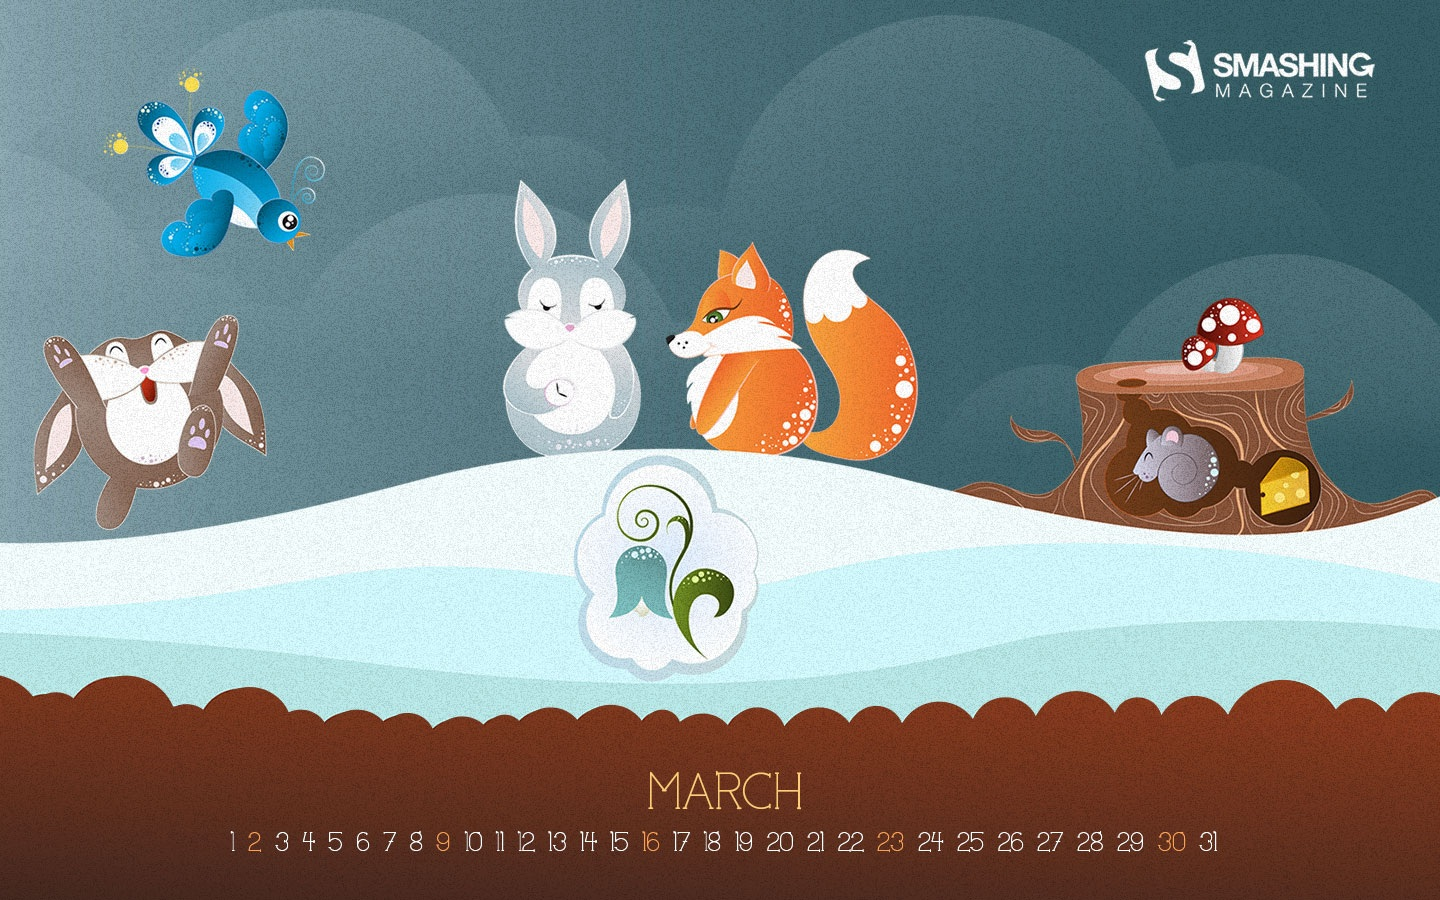 In January Calendar Wallpaper 50122